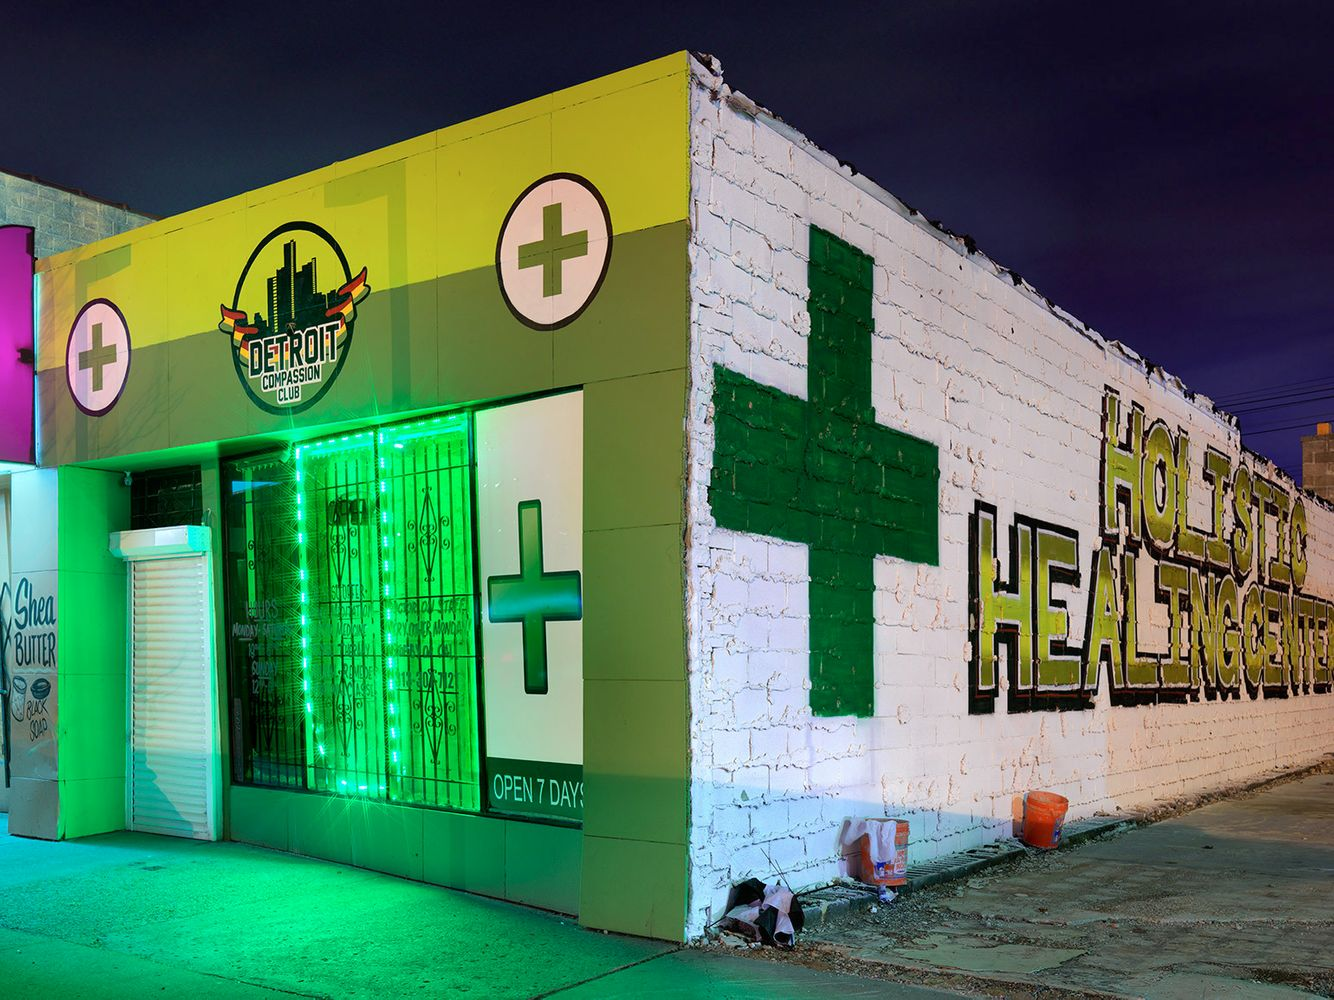 Medical Marijuana Dispensary #35, Westside, Detroit 2016